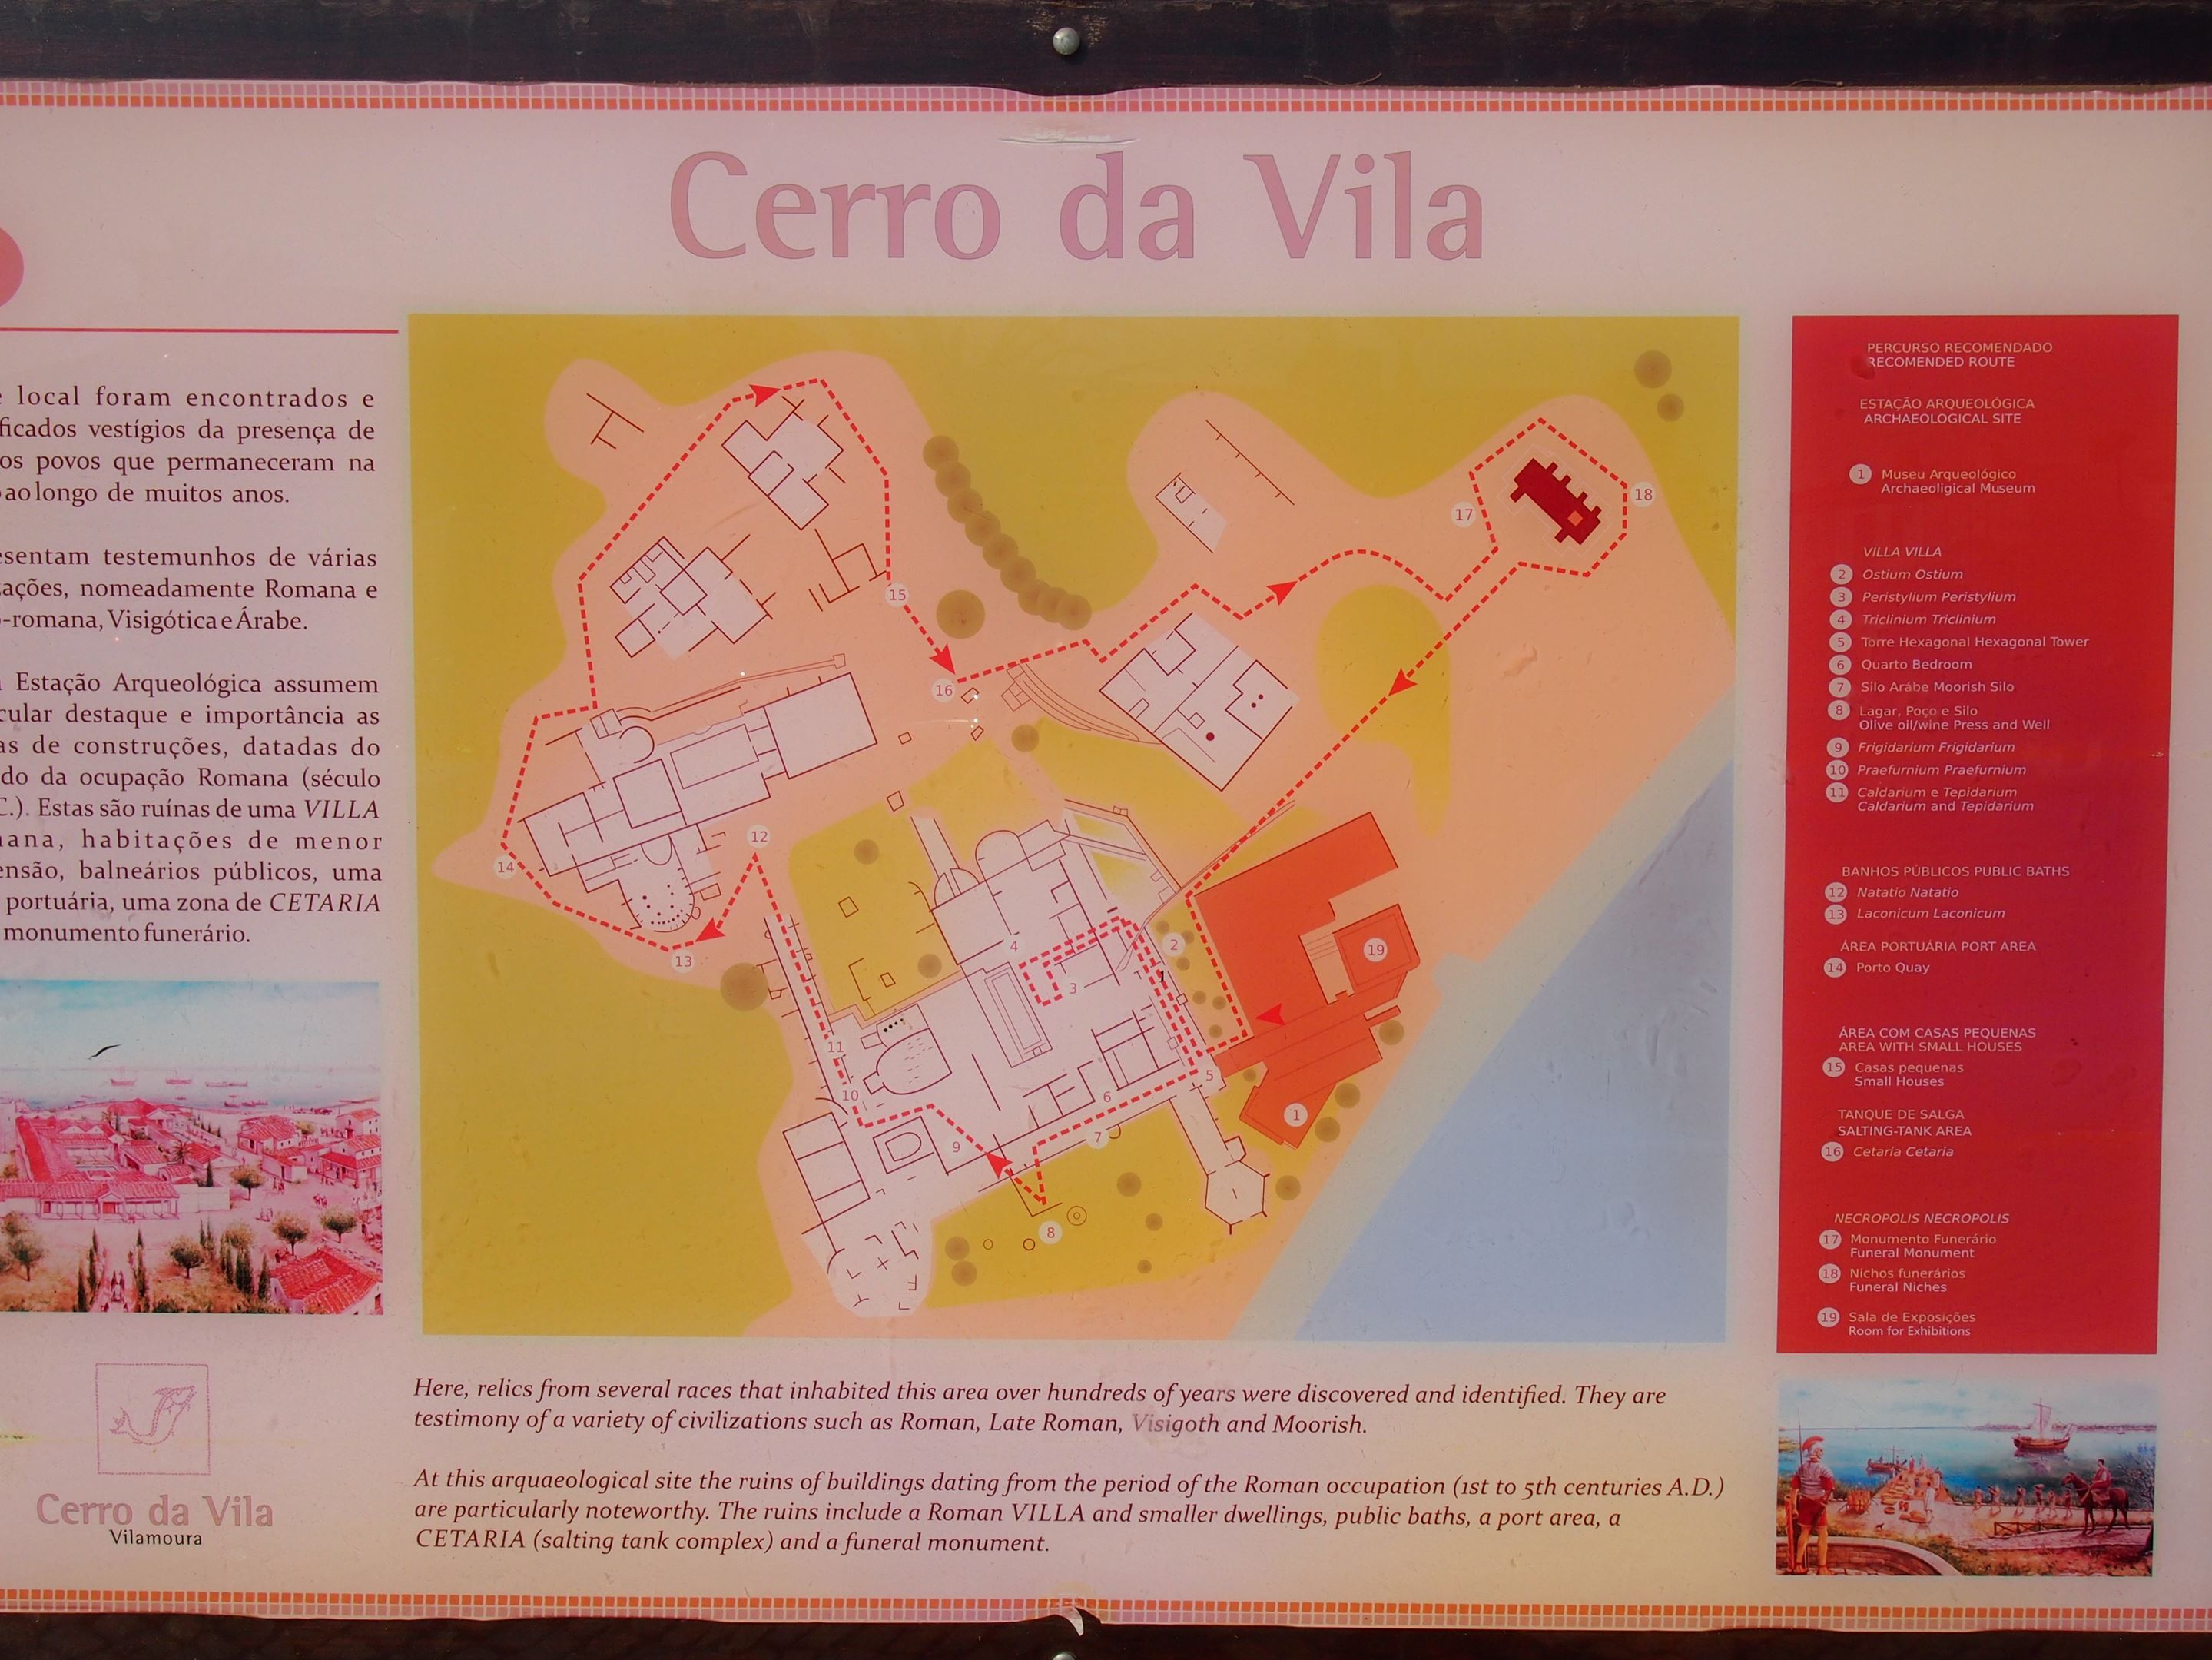 Map of Cerro da Vila ruins